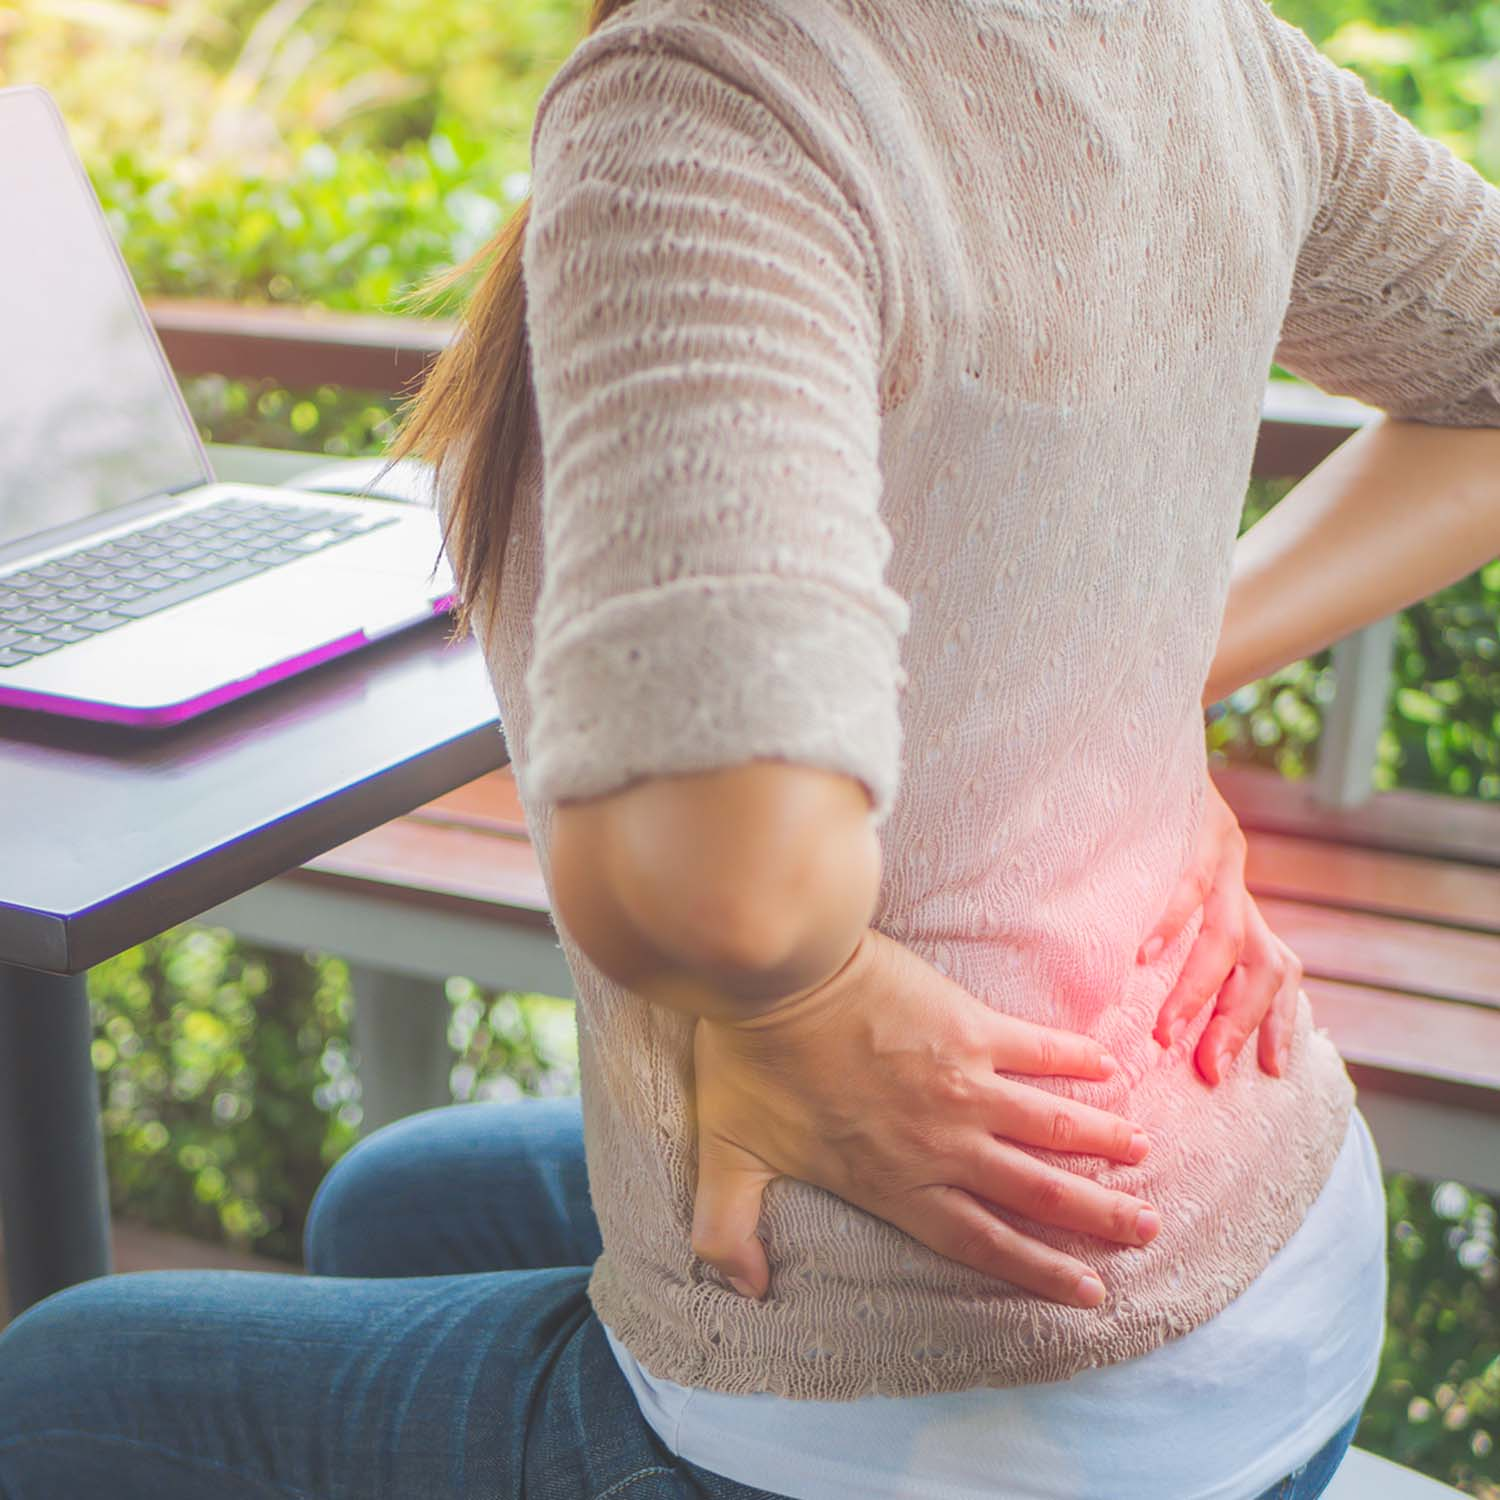 Young woman sitting with back pain